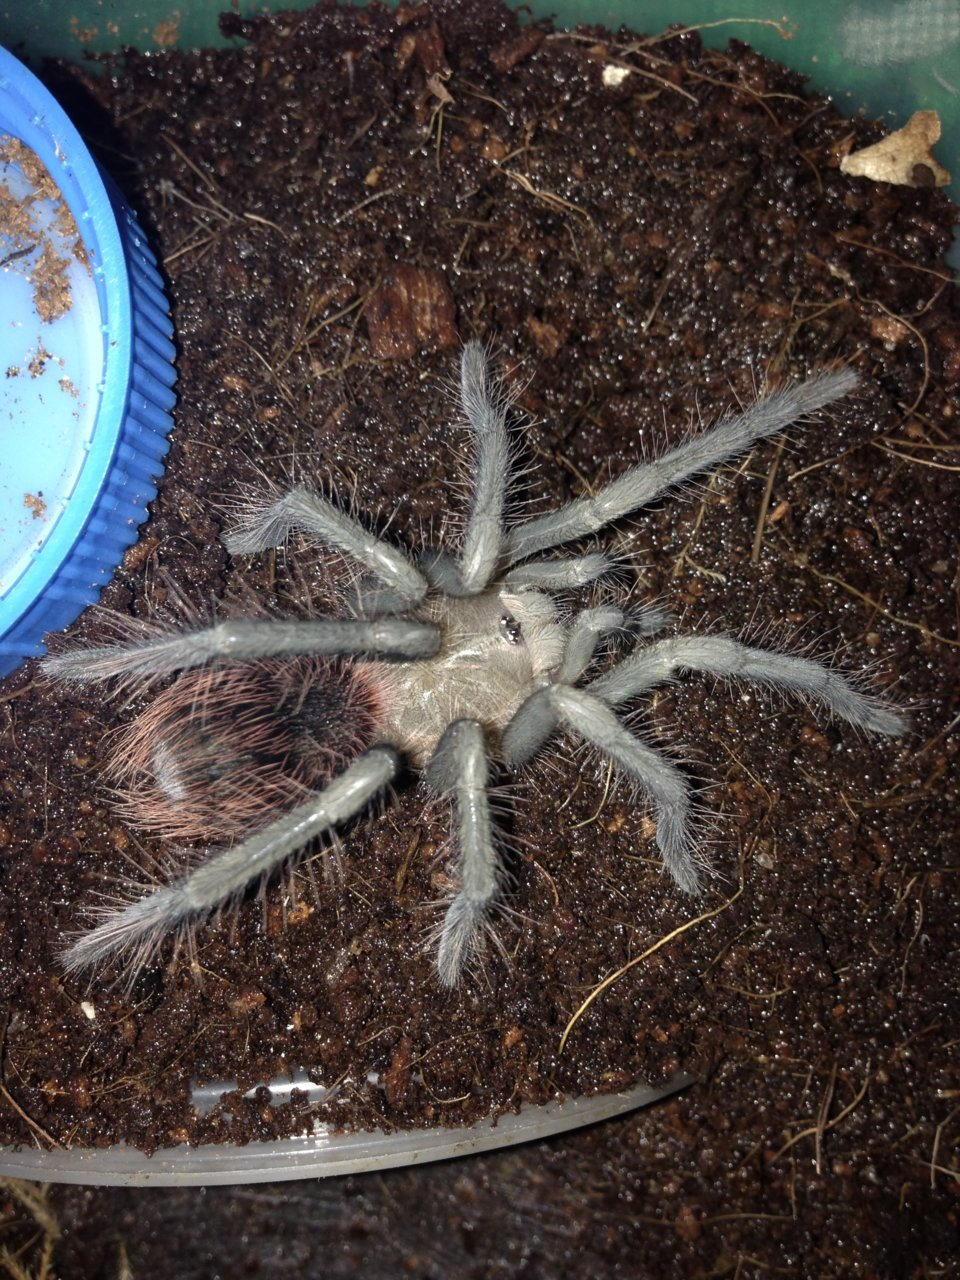 1.0 X. immanis freshly Molted 3''